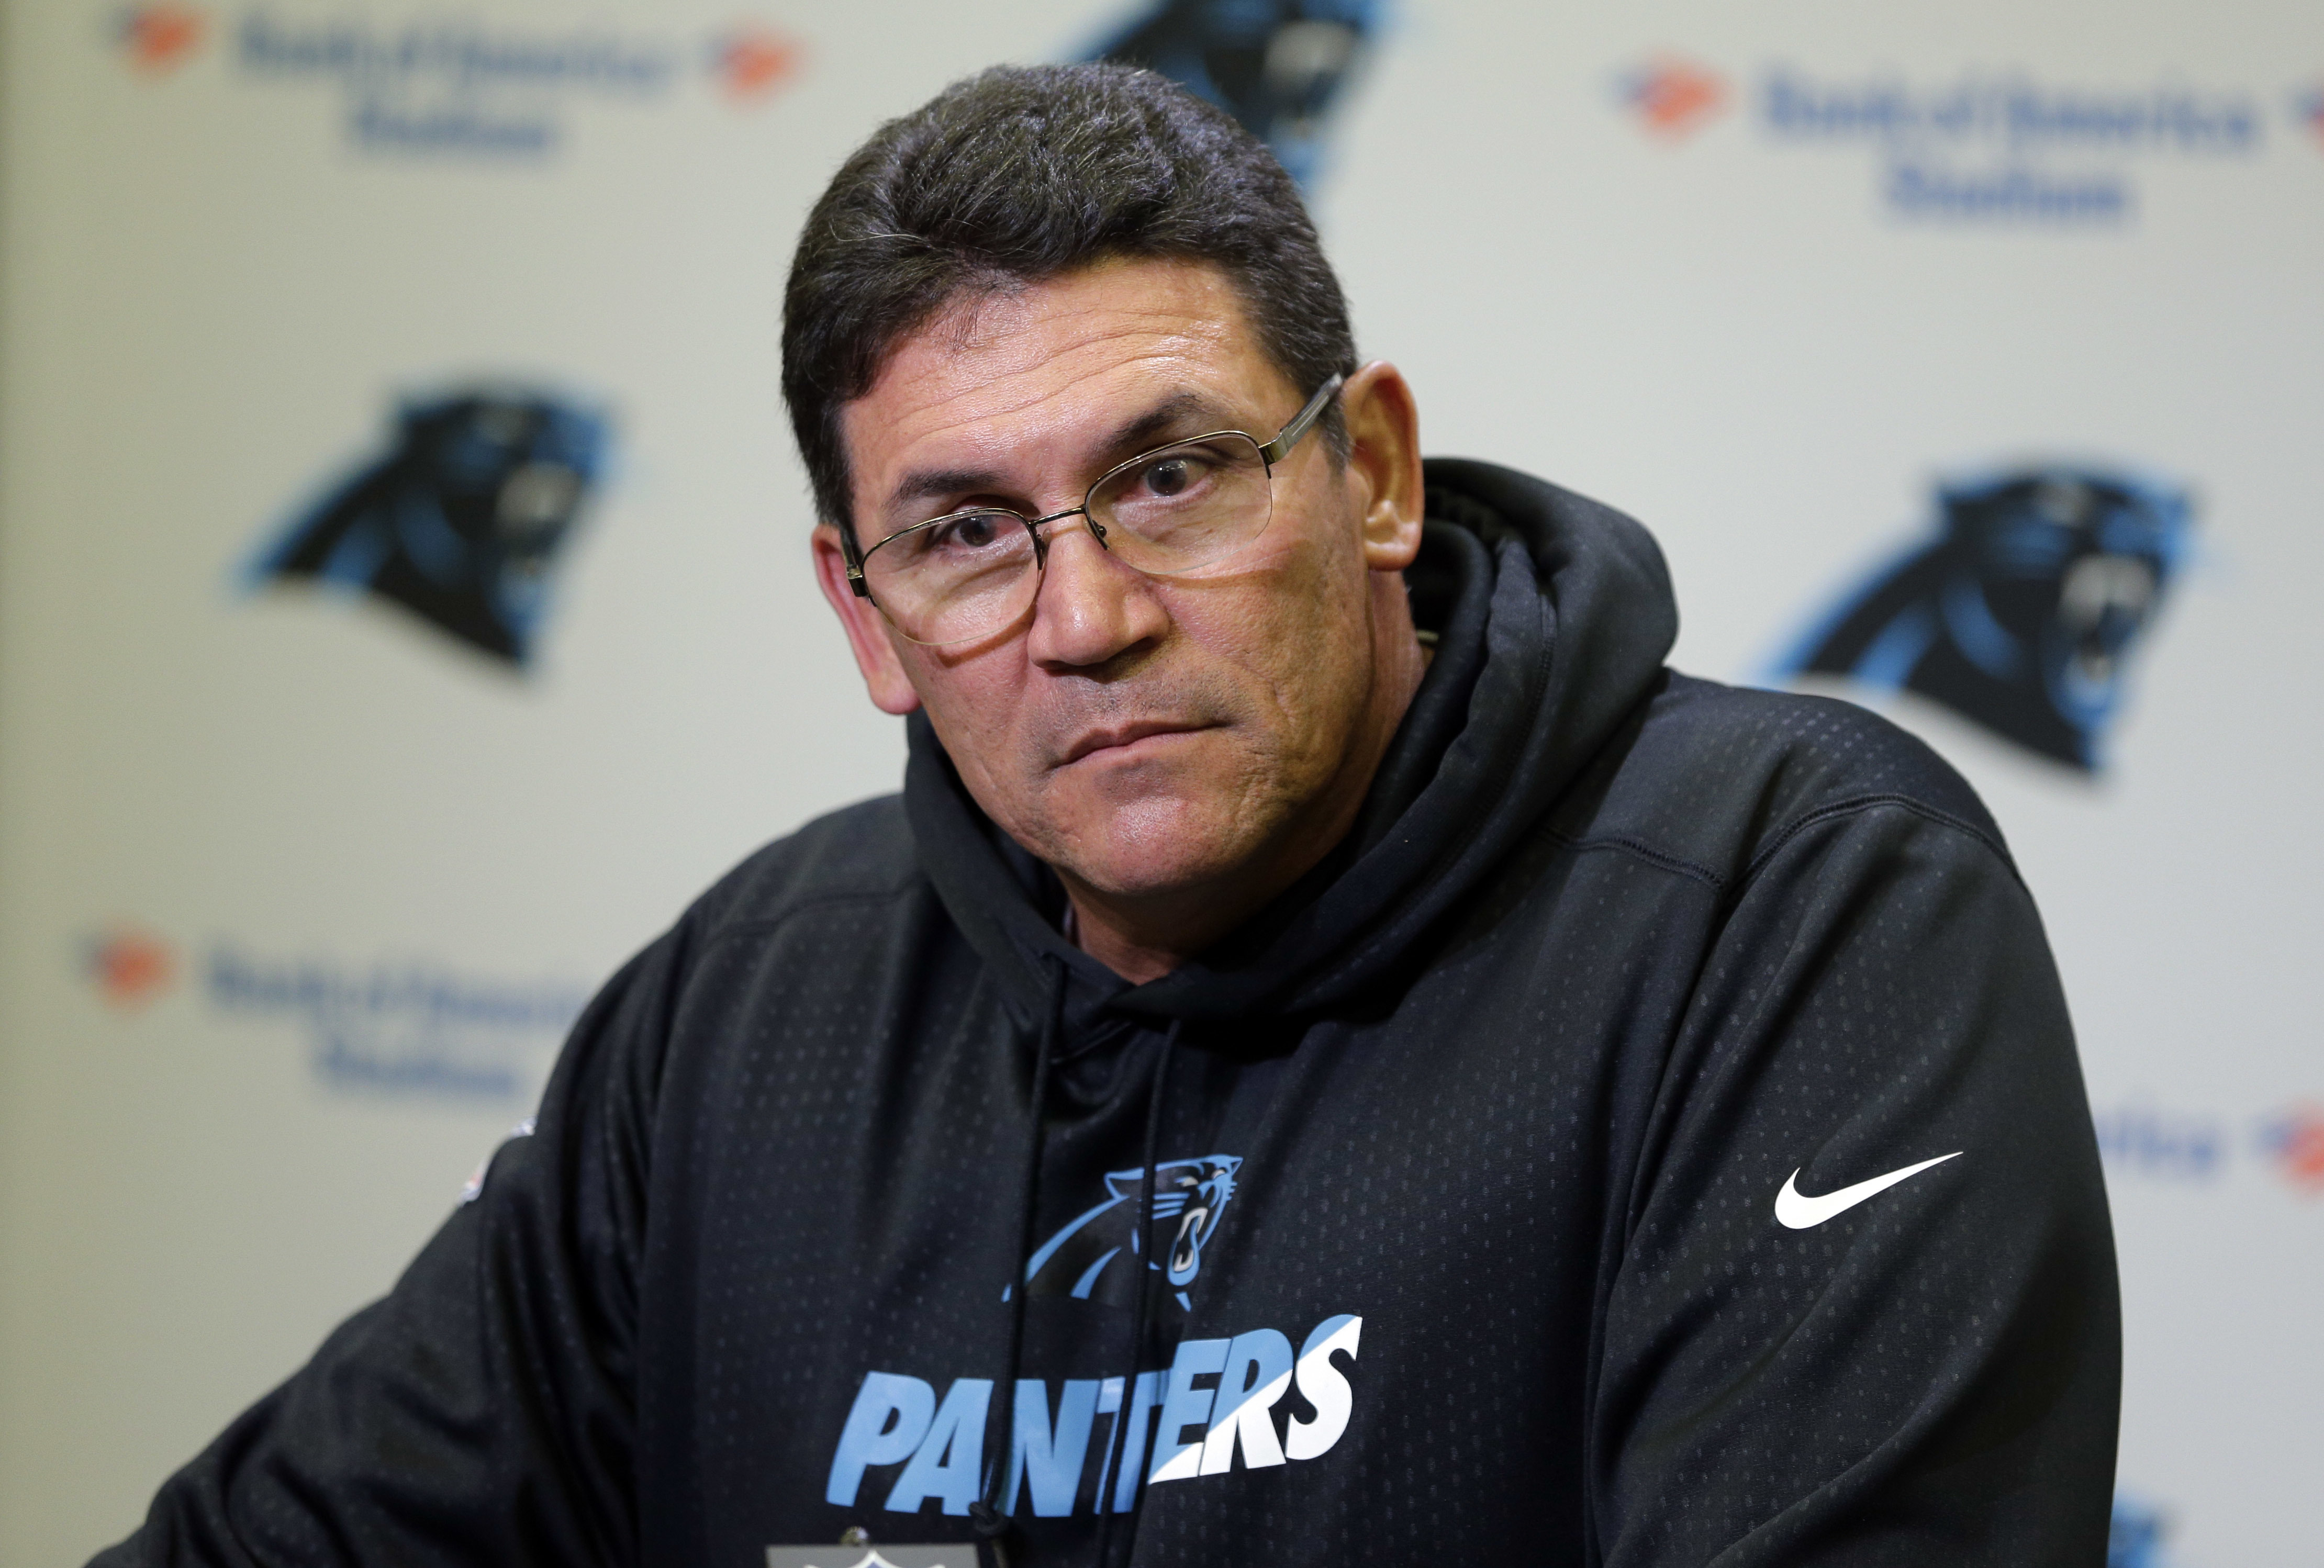 Carolina Panthers head coach Ron Rivera speaks to the media during a news conference in Charlotte, N.C., Wednesday, Nov. 2, 2016. (AP Photo/Chuck Burton)